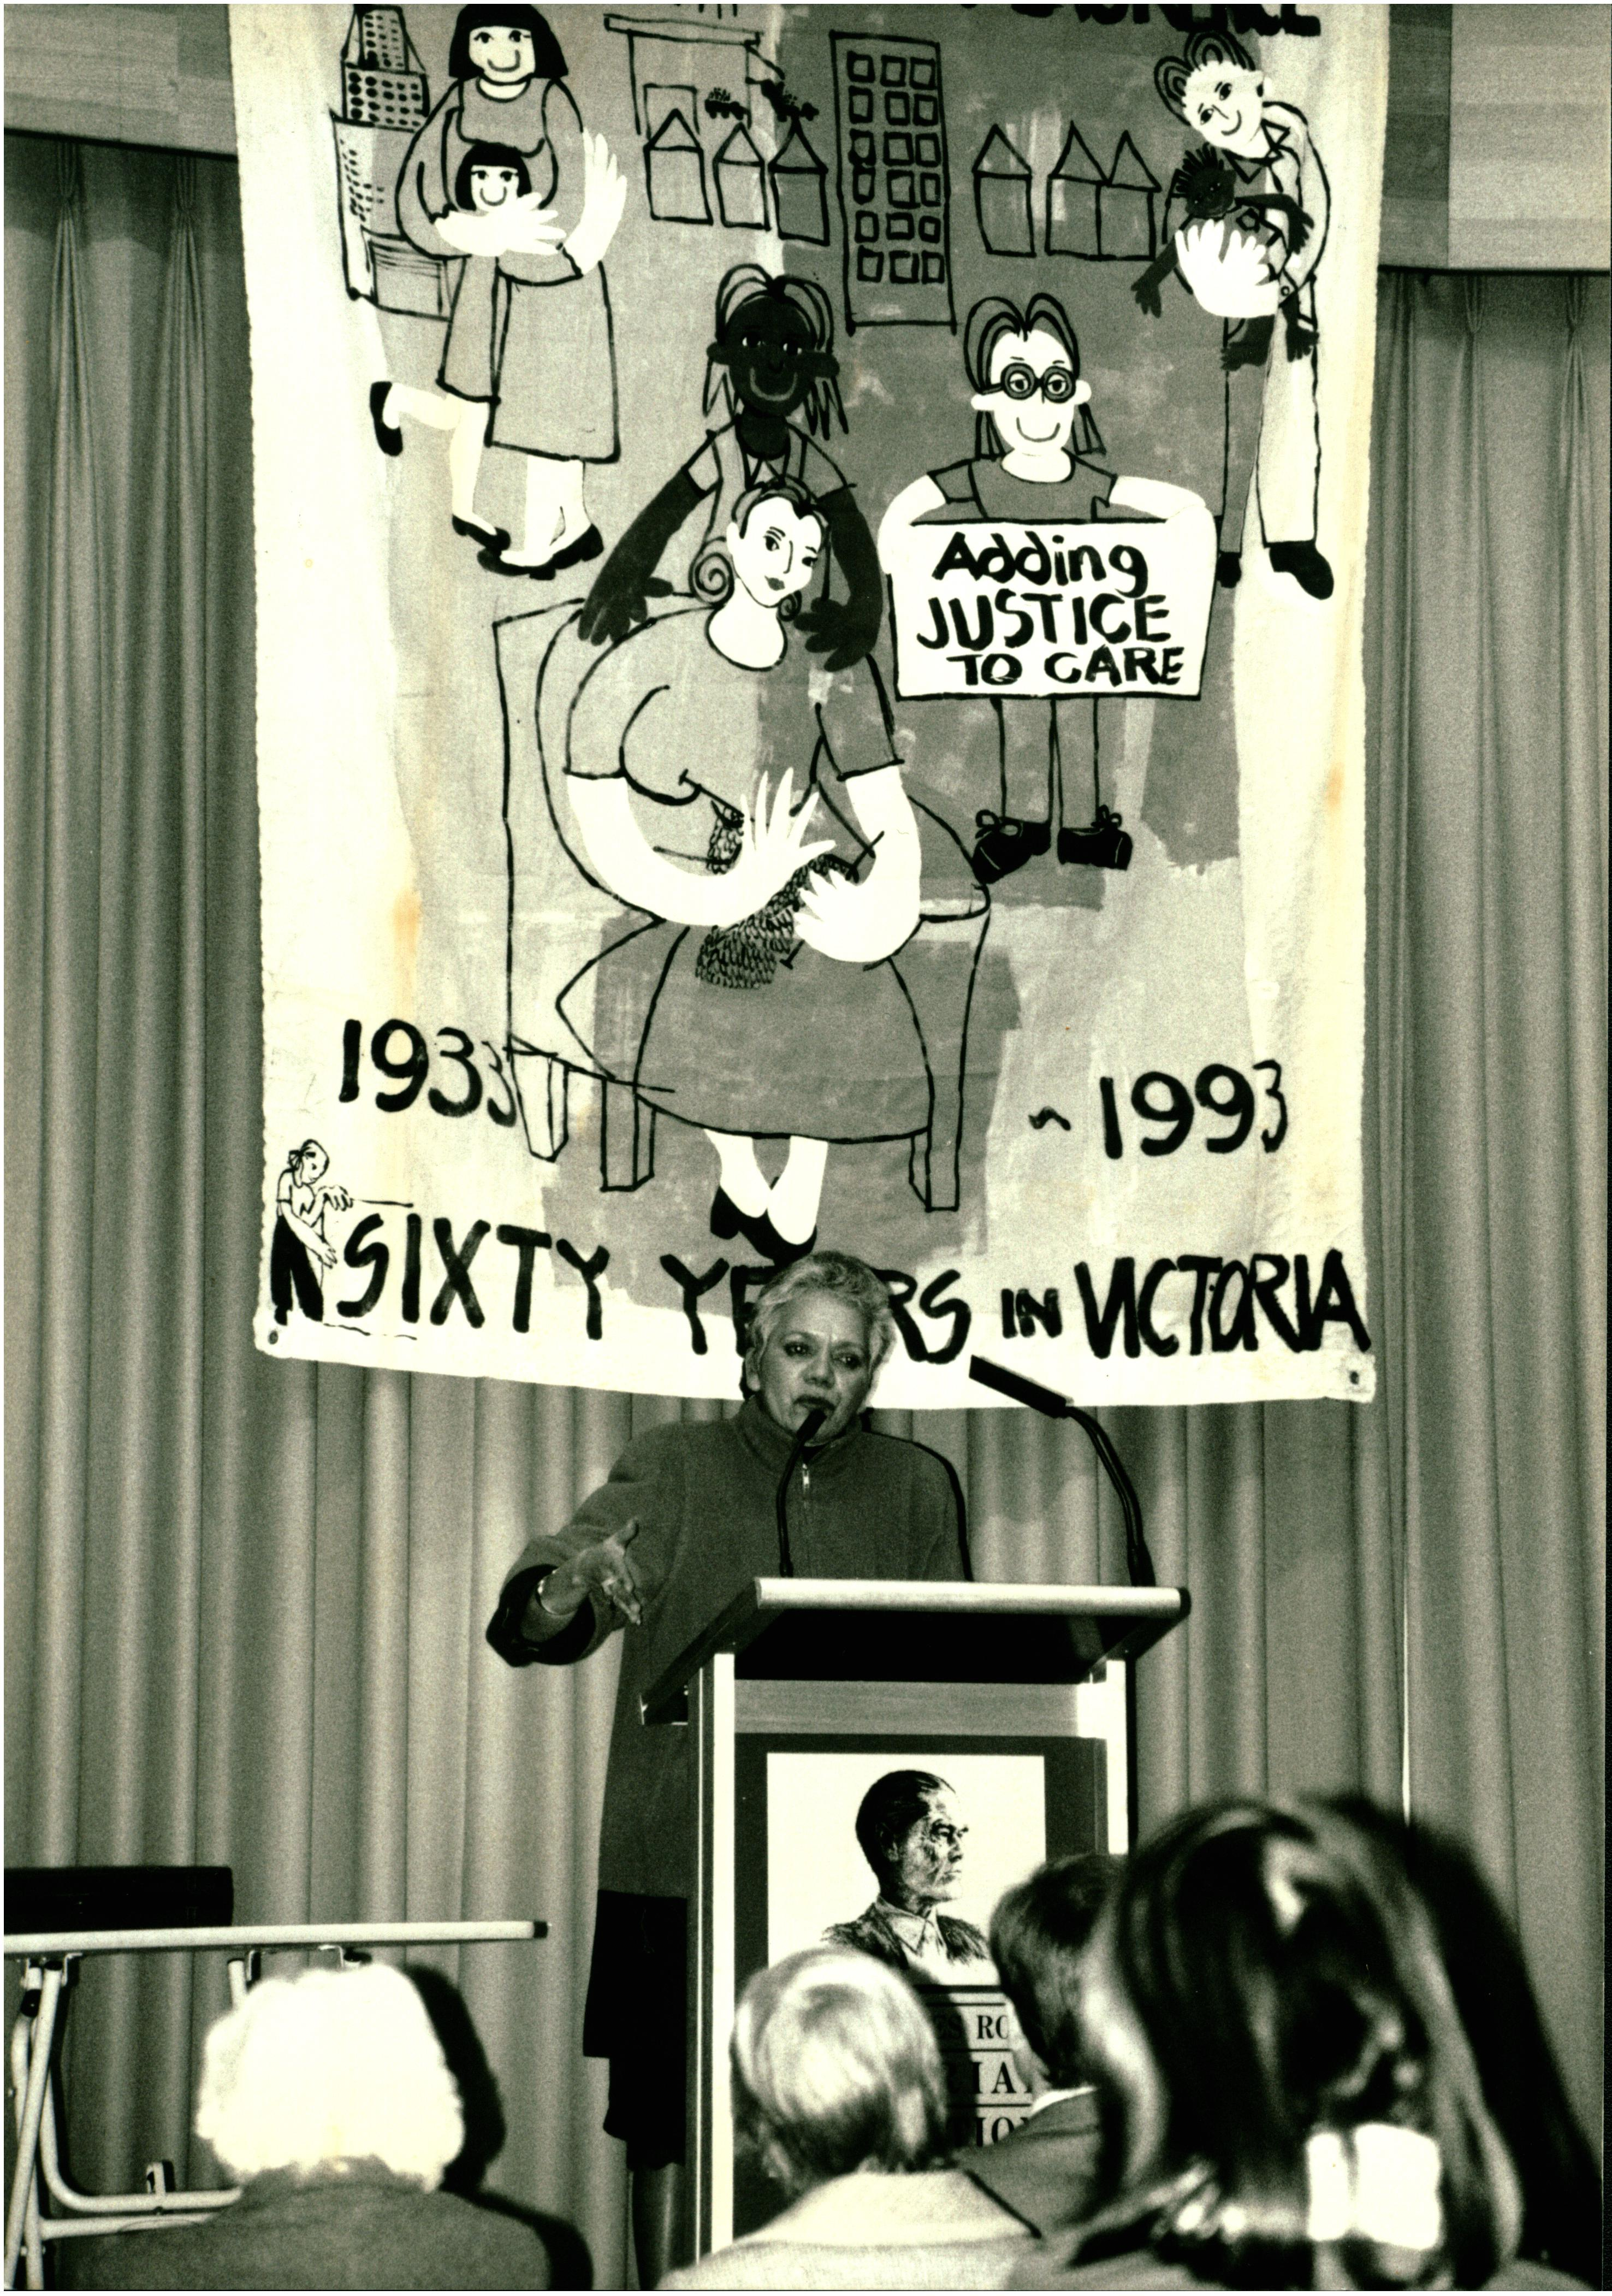 This is a black and white photo of Lillian Holt addressing the audience at the 1993 Sambell Oration. She is standing in front of a banner that says 'Adding justice to care' and '60 years in Victoria'